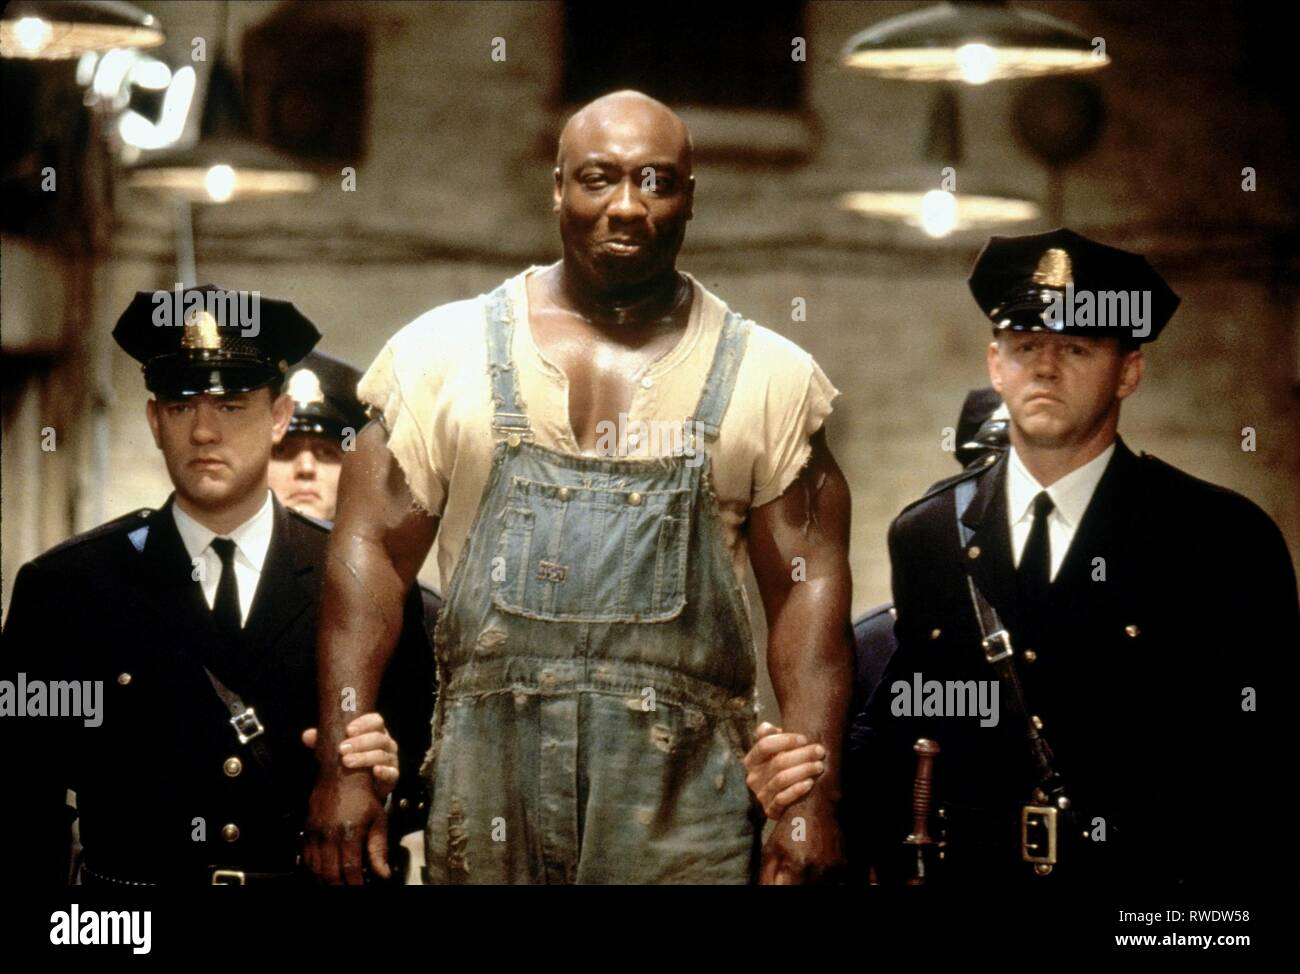 The Green Mile Film High Resolution Stock Photography And Images Alamy